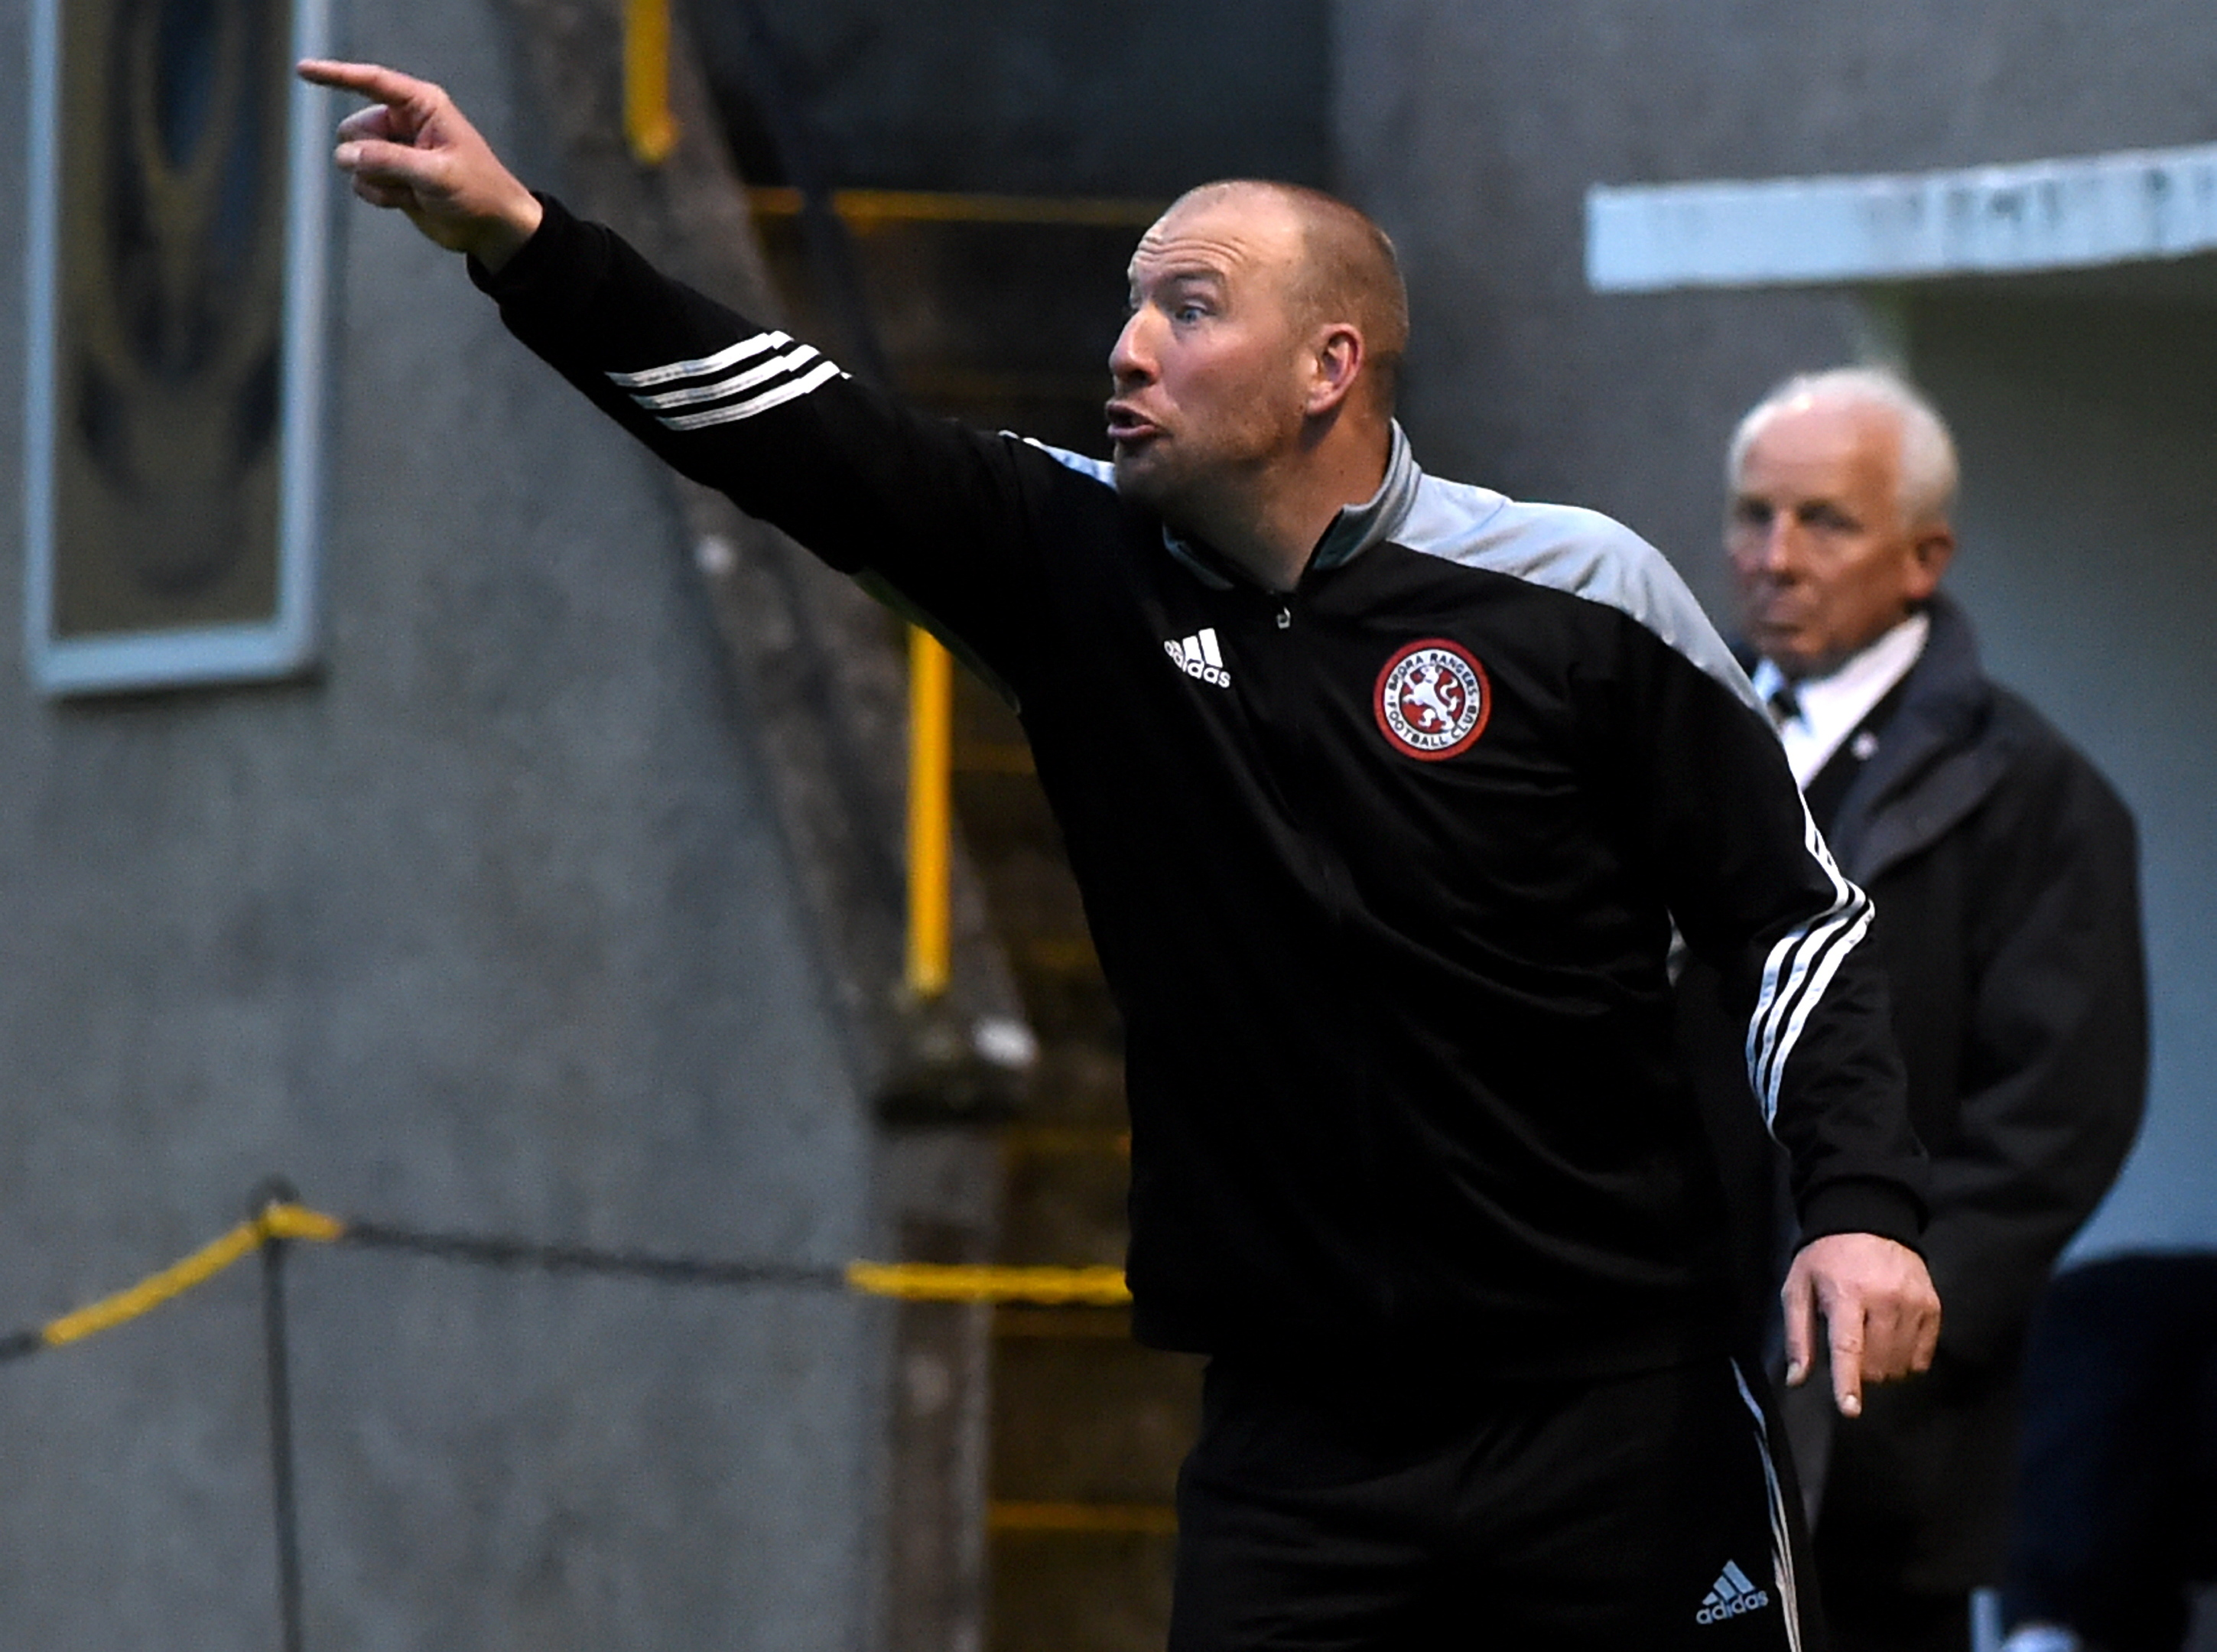 Ross Tokely has stepped down as Brora Rangers manager.